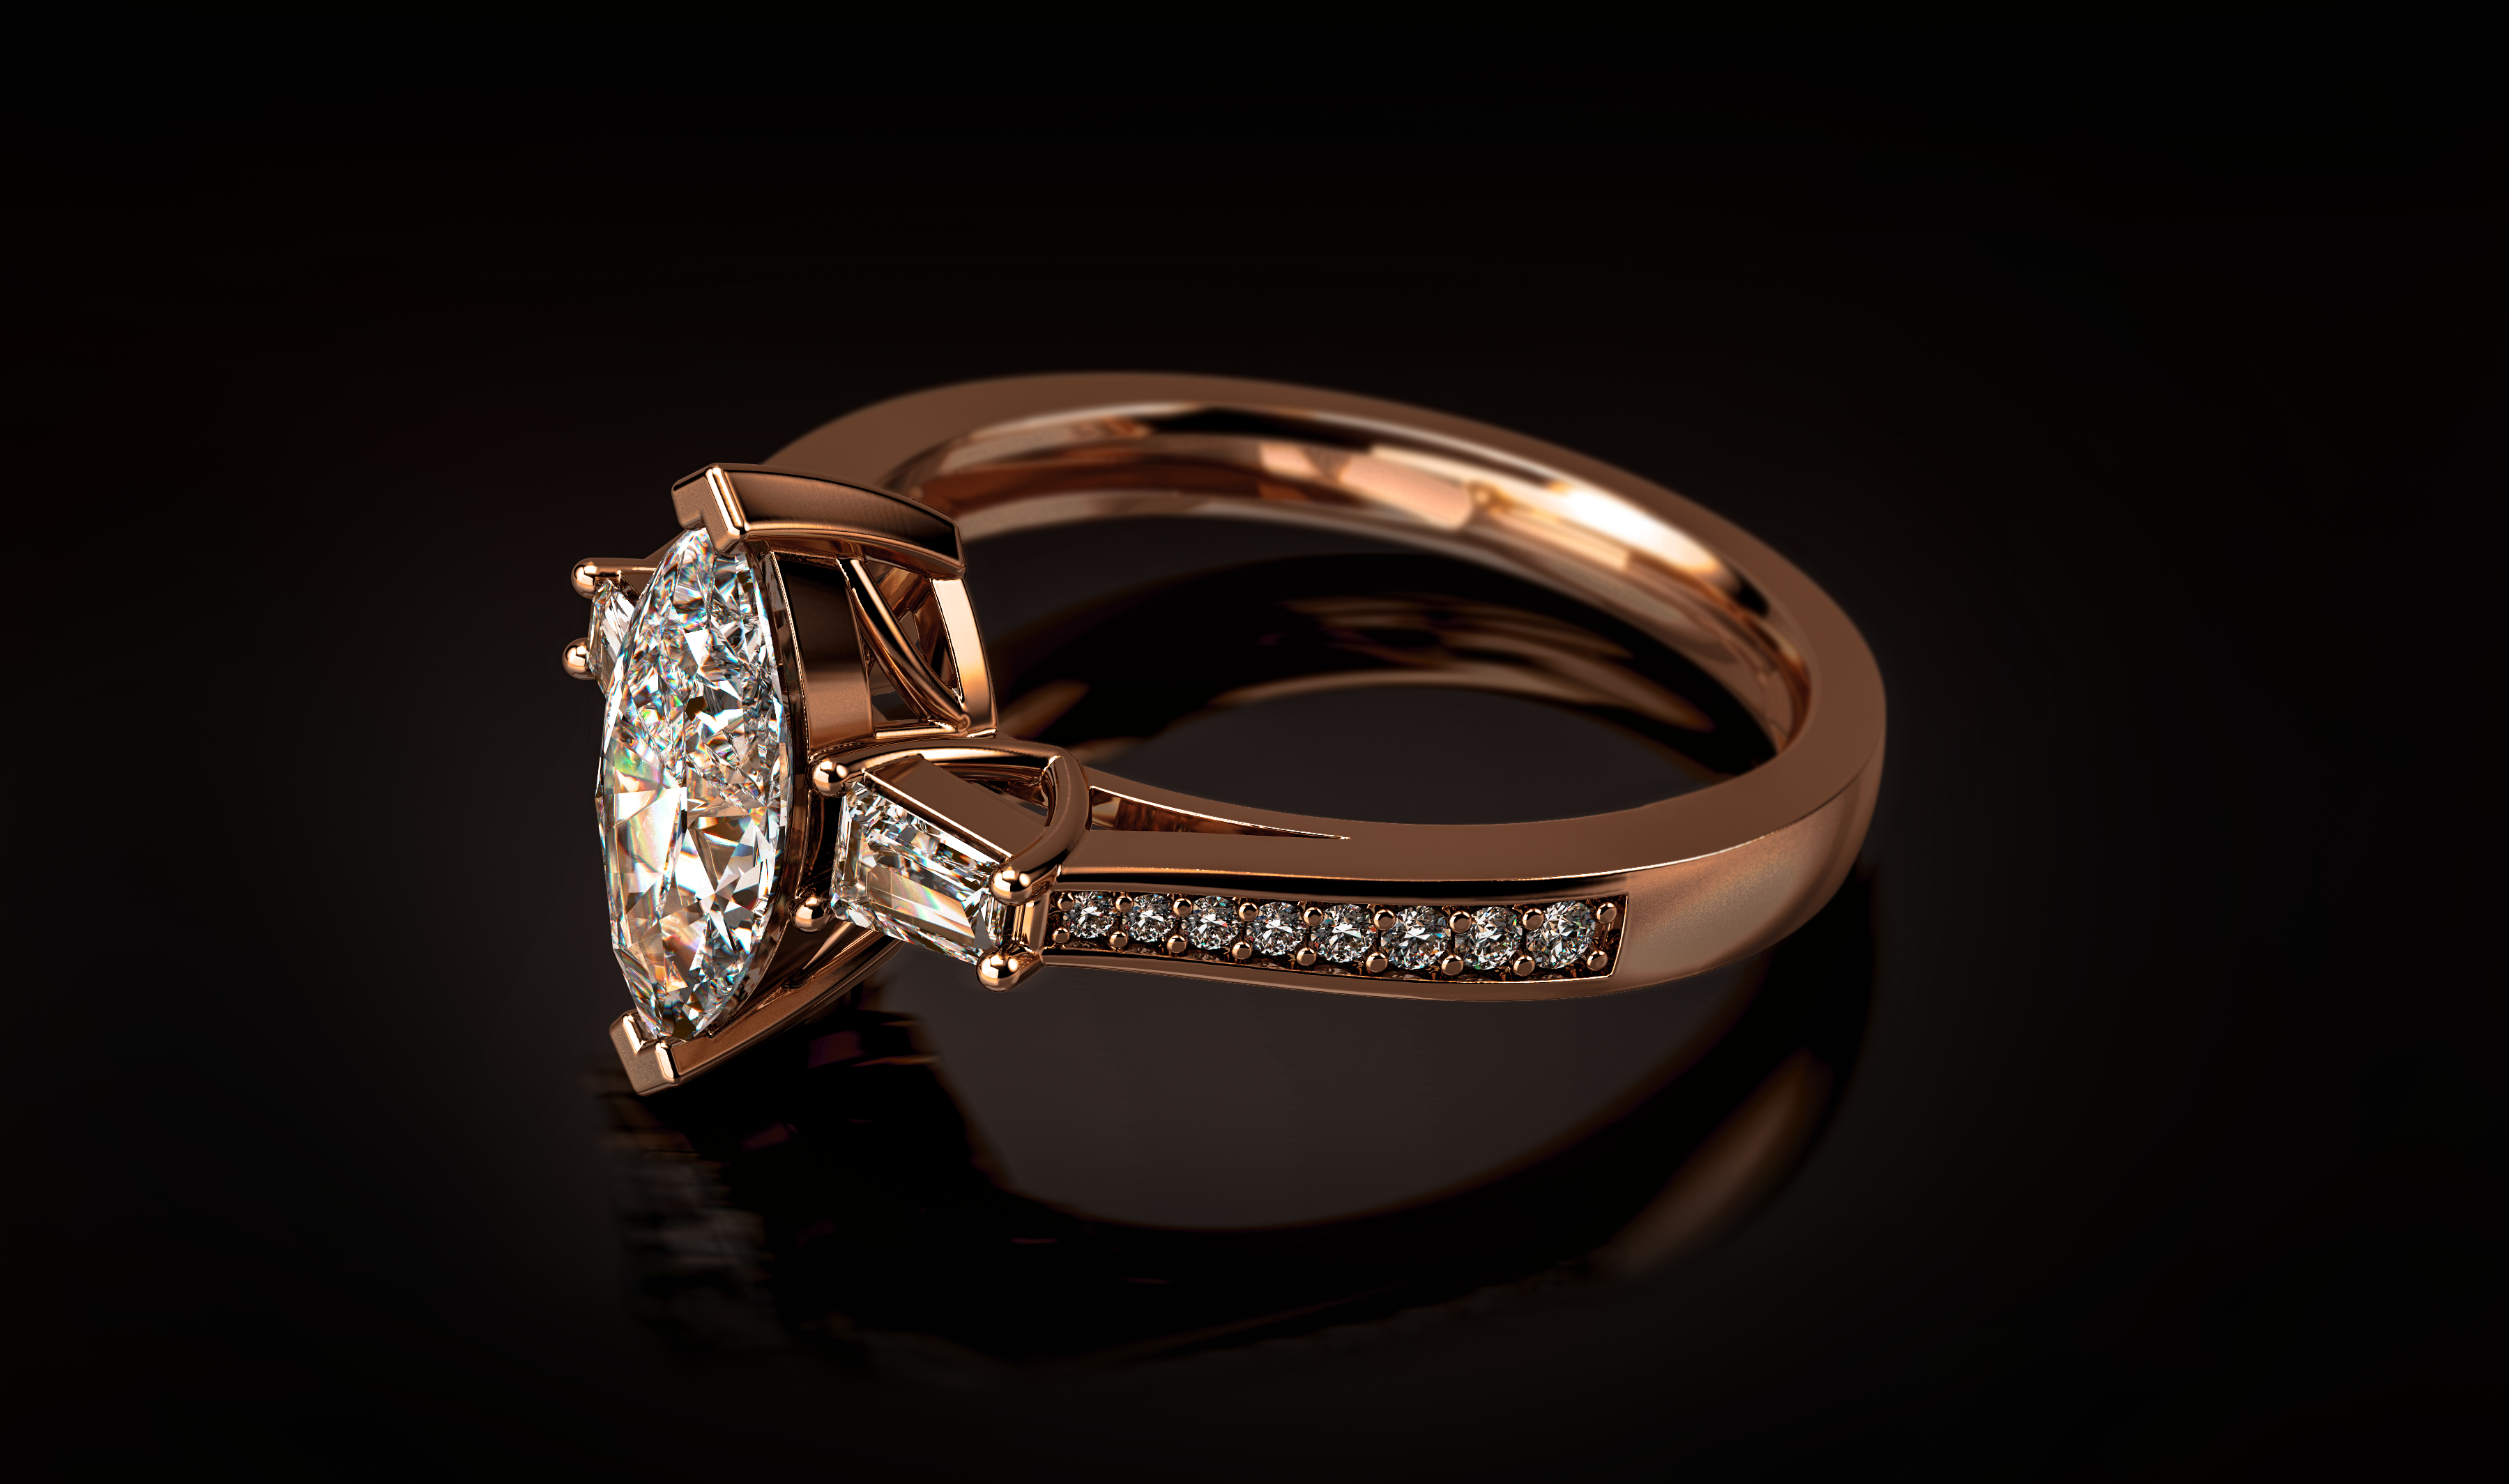 Video Rendering - 3D Jewelry Rendering - CAD Master